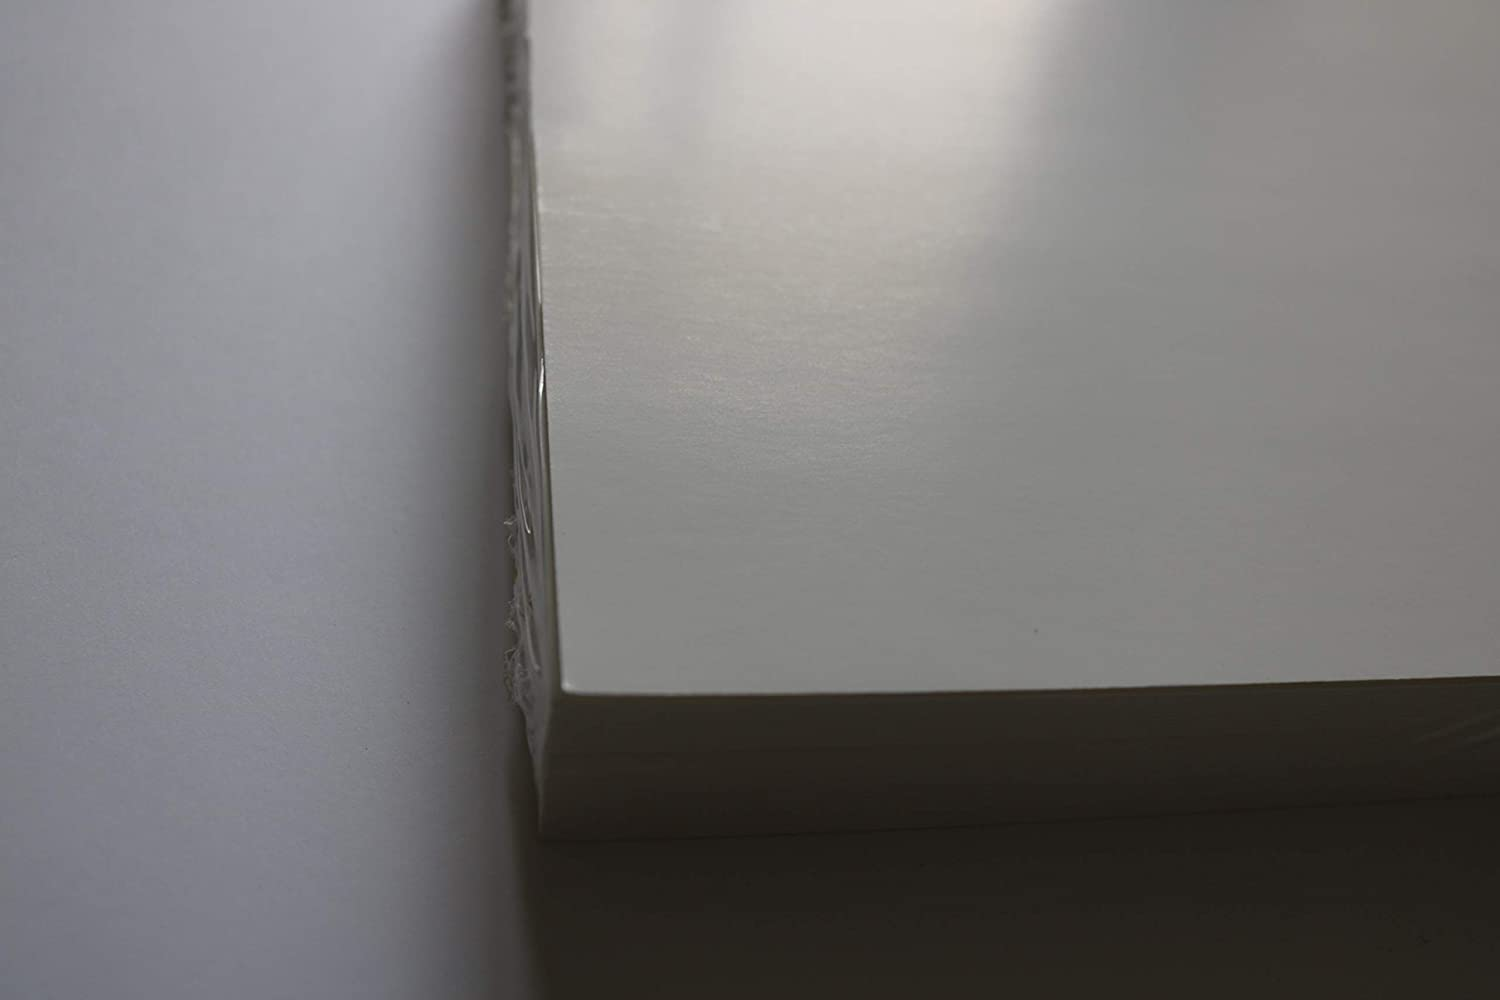 White Colour 10PT Thickness 50 Sheets 8.5 X 11 CARDSTOCK Cover Coated 1 Side SEMI-Gloss Finish 190 GSM